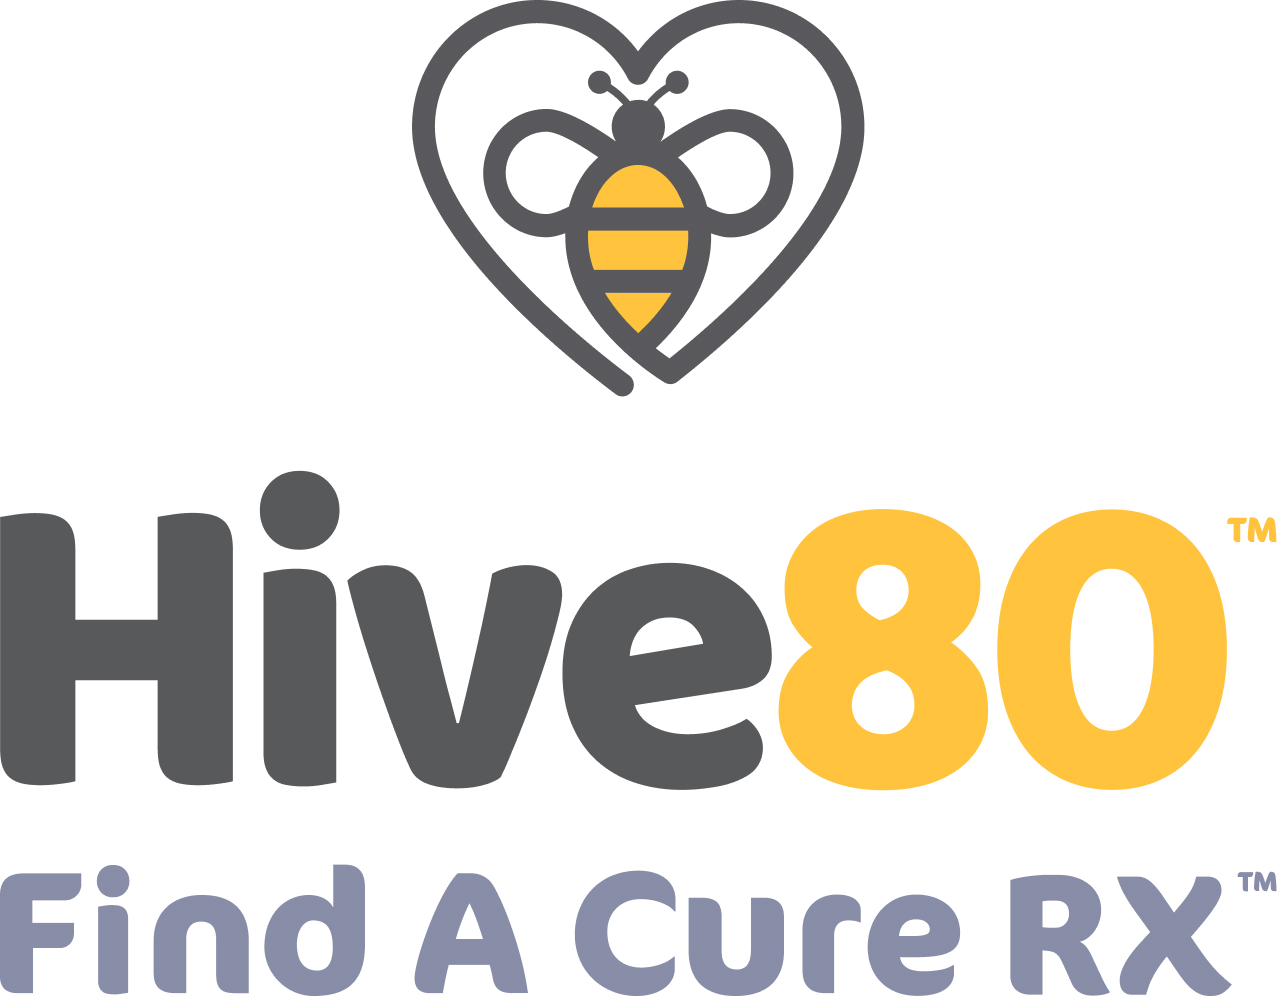 Hive80 Find A Cure Rx